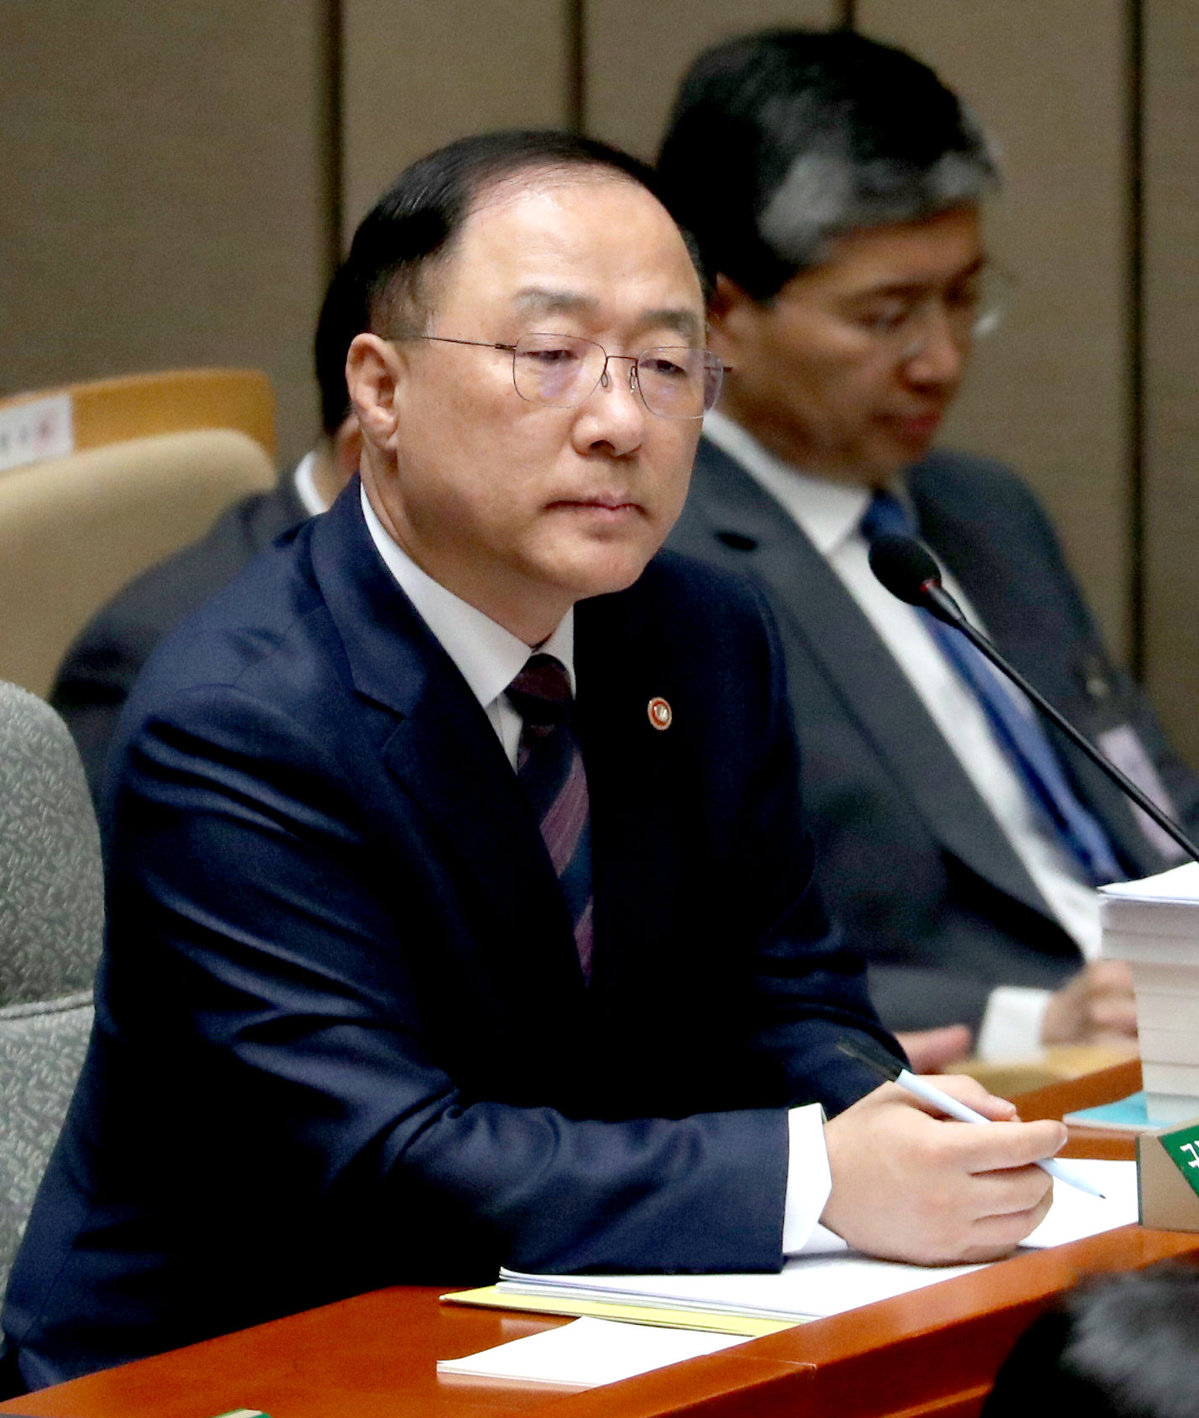 S Korean president names new finance minister, top economic adviser